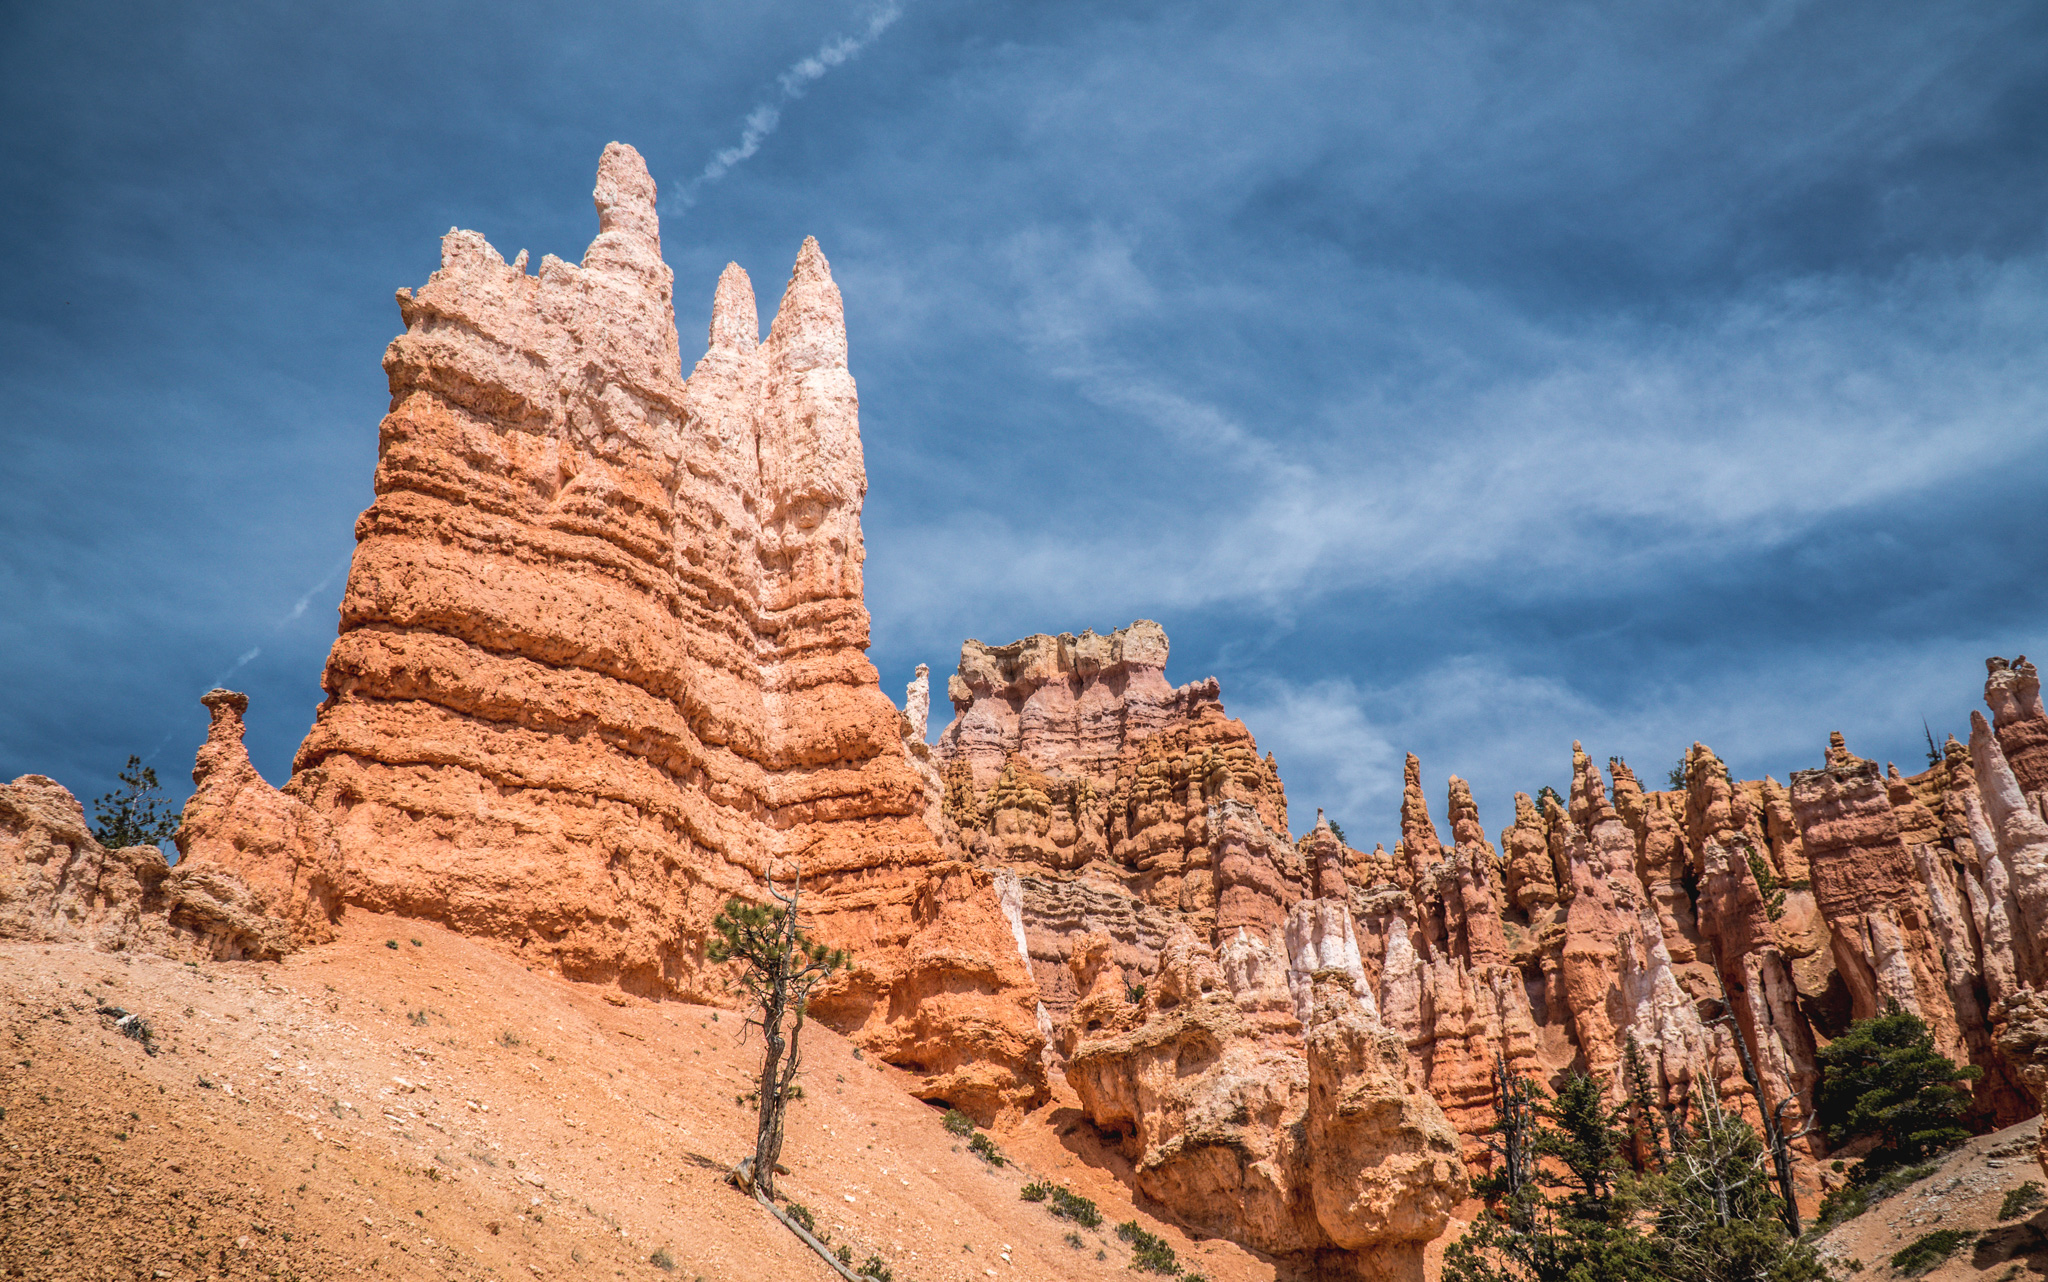 Bryce Canyon - the Supermodel of national parks in the U.S.